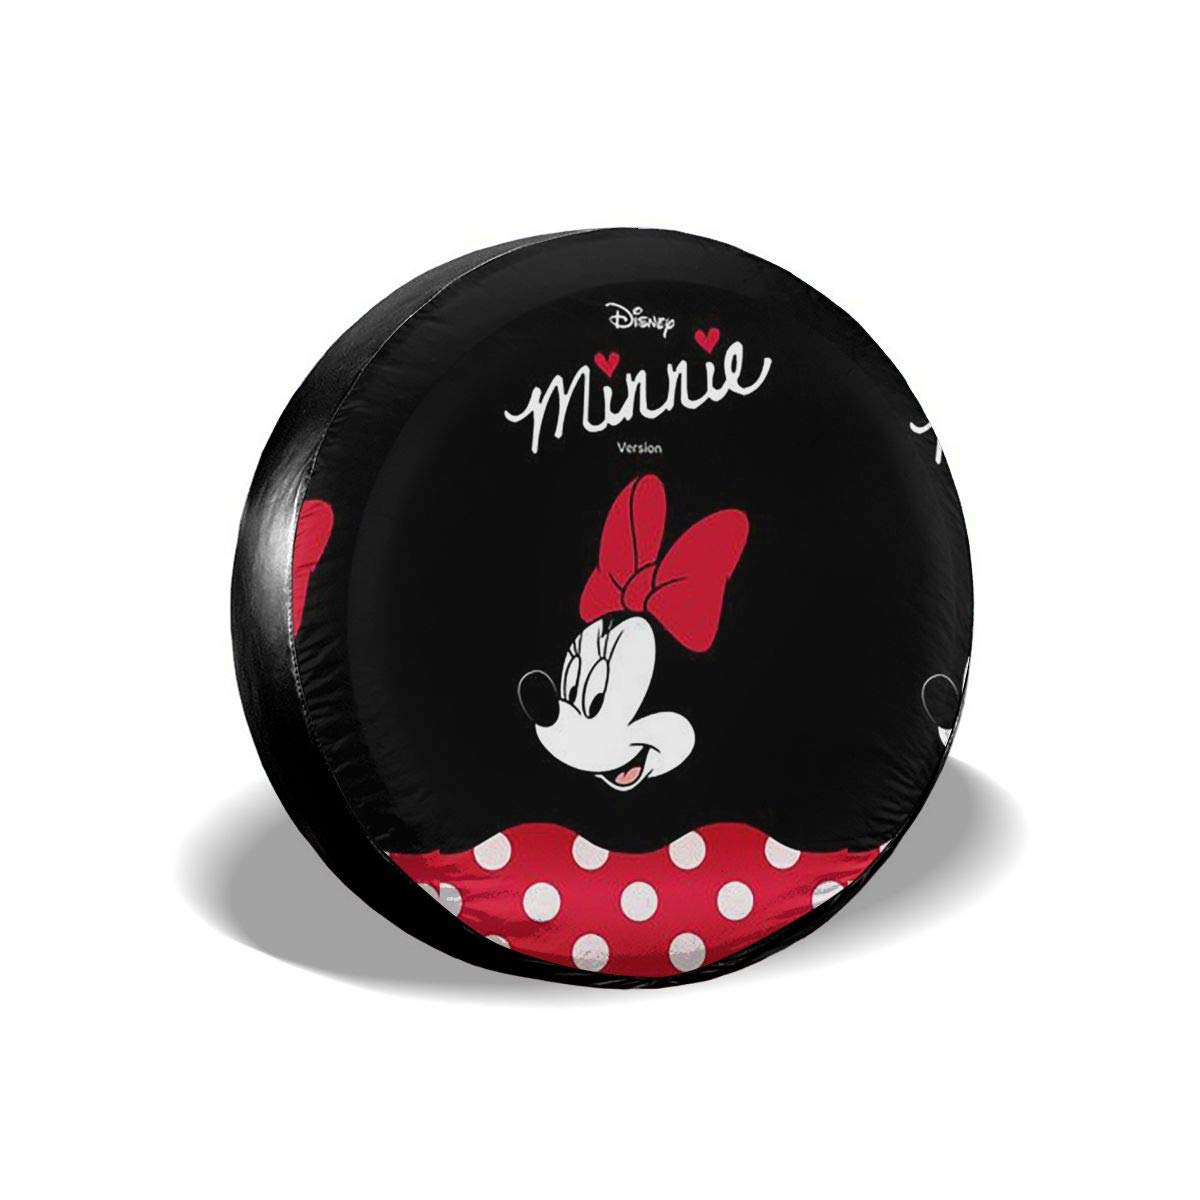 Classic Accessories Over Drive Standard RV Jeep Liberty Wrangler SUV Camper Travel Wheel Cover For14-17 Inch Lbbb1994 Fashion Minnie Mouse